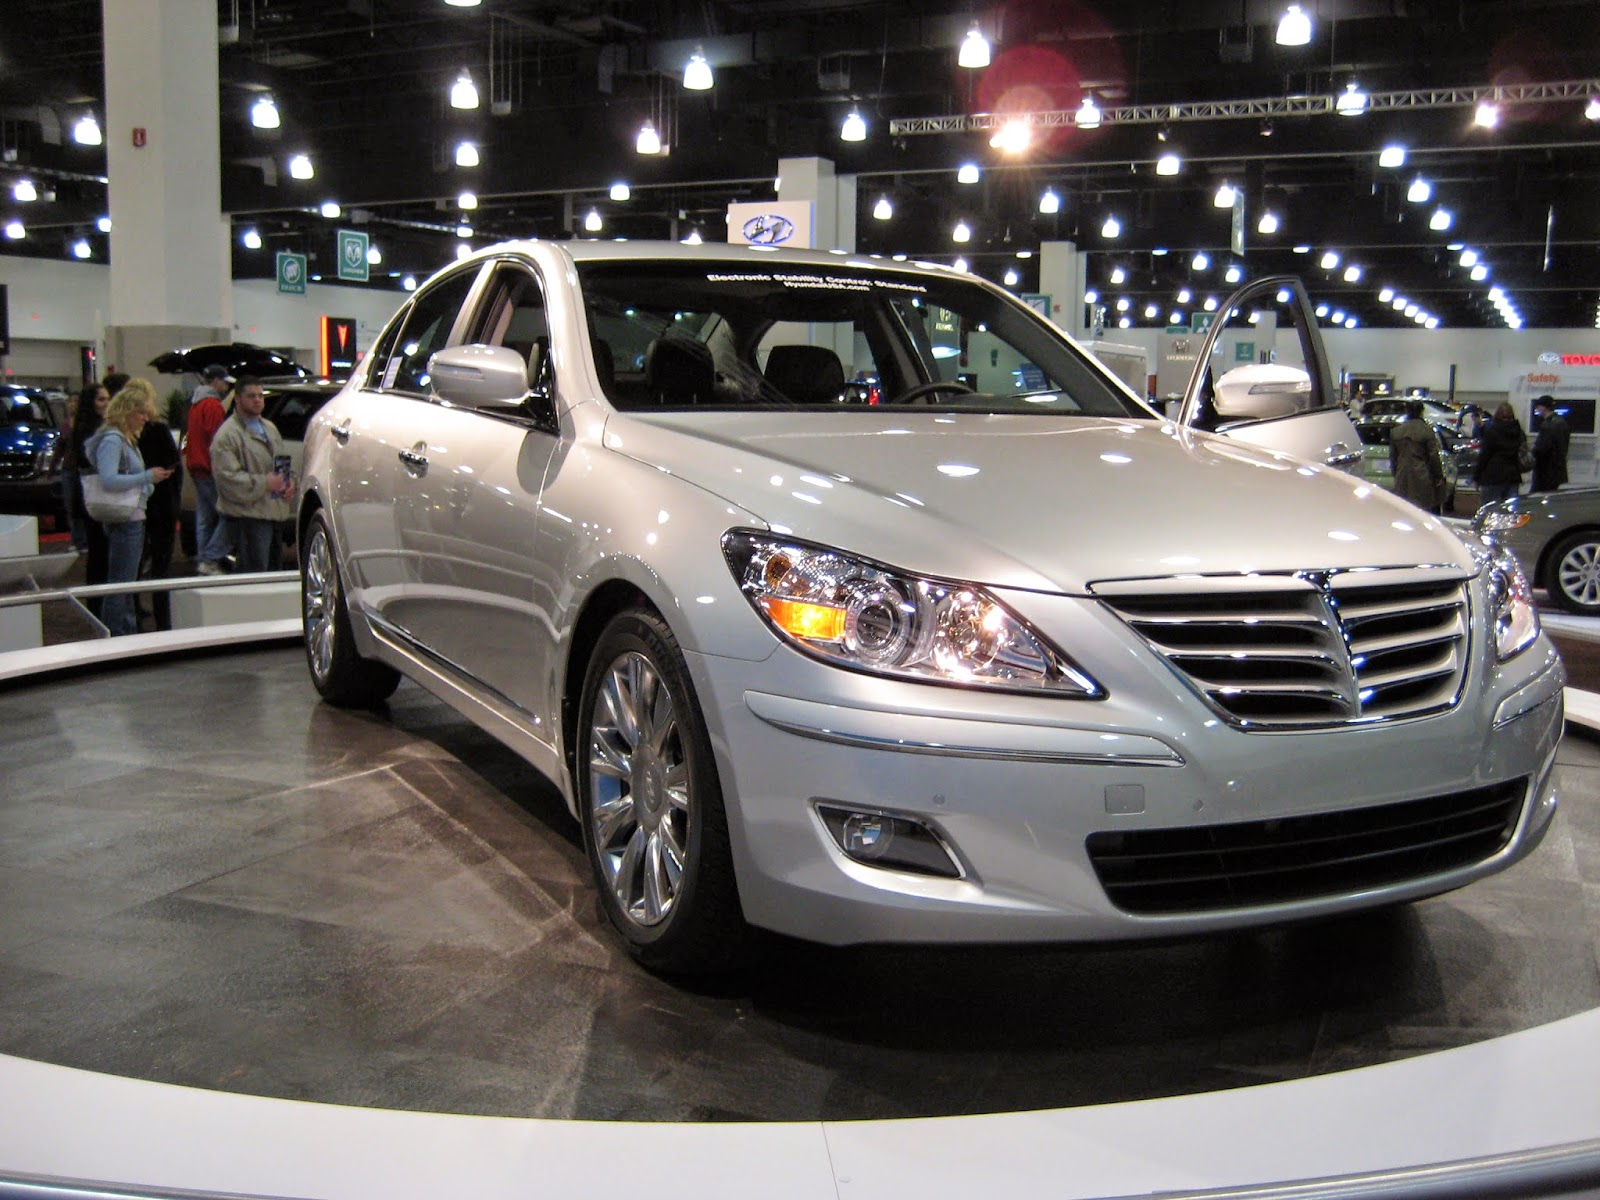 The Hyundai Genesis, named the 2009 North American Car of the Year.